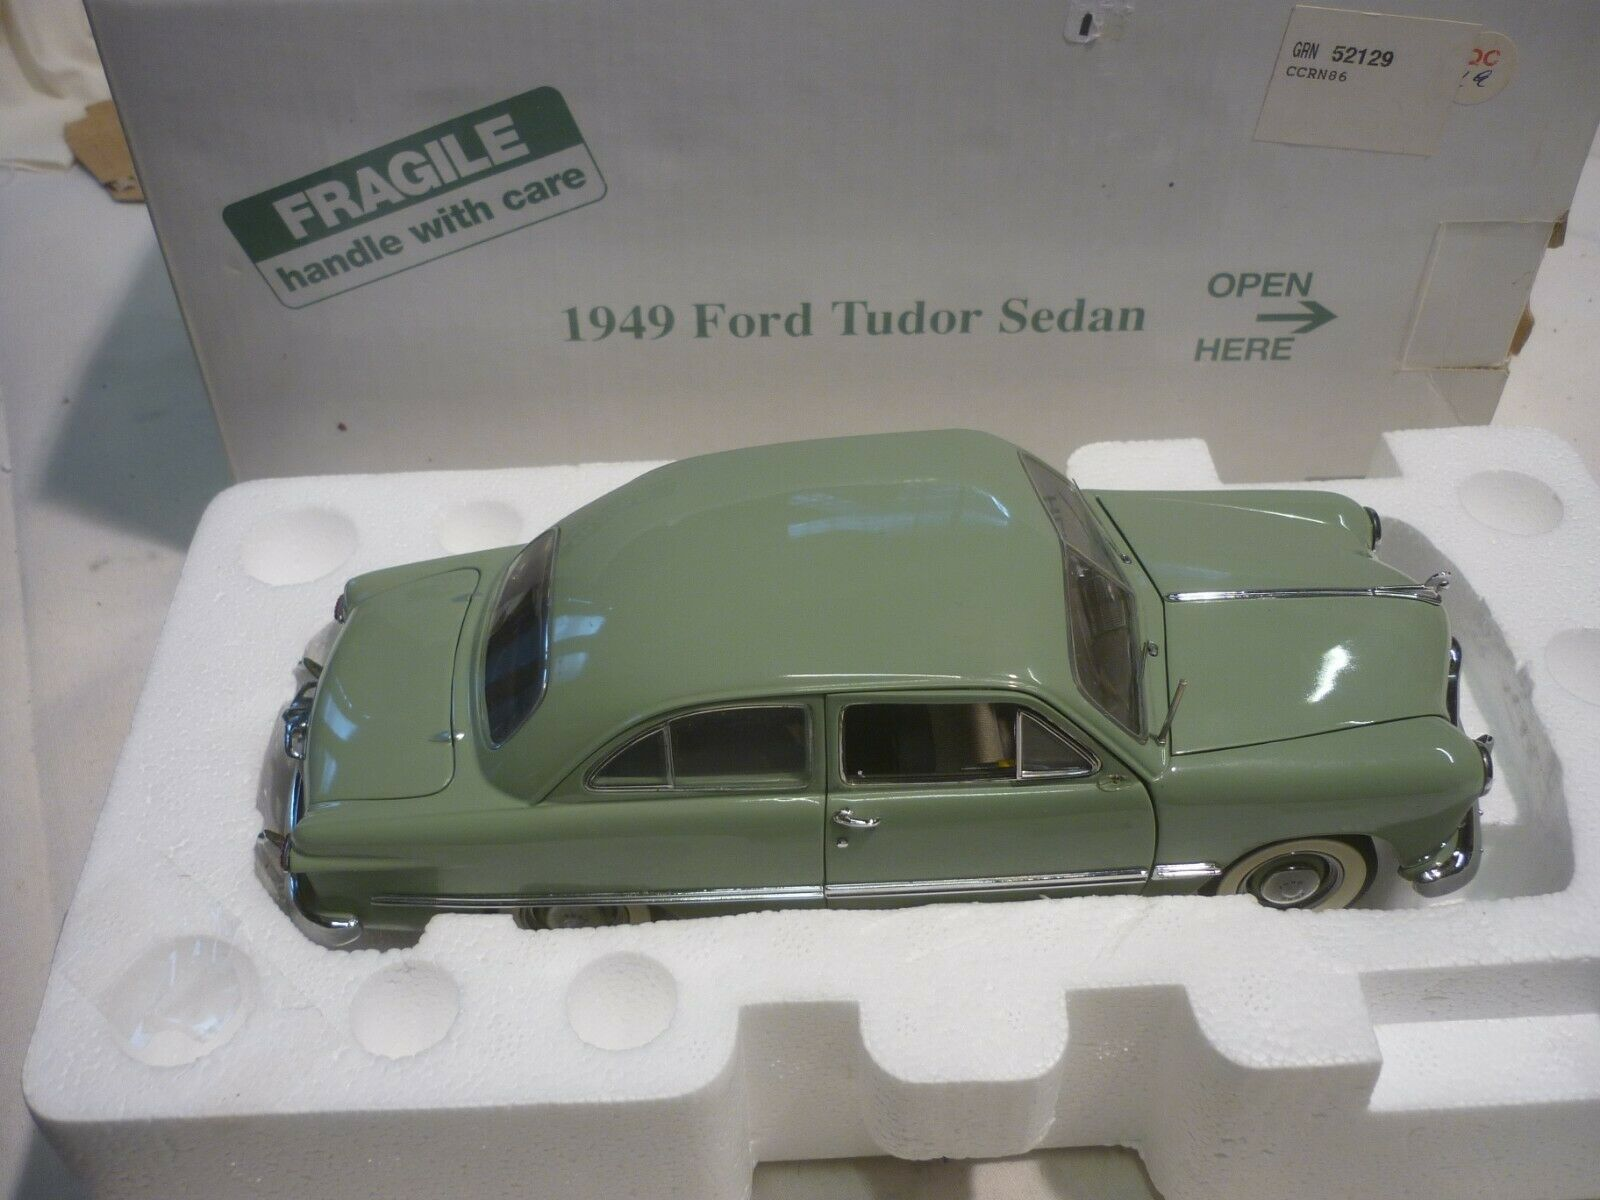 A Danbury mint of a scale model of a 1949 Ford Tudor sedan, Boxed